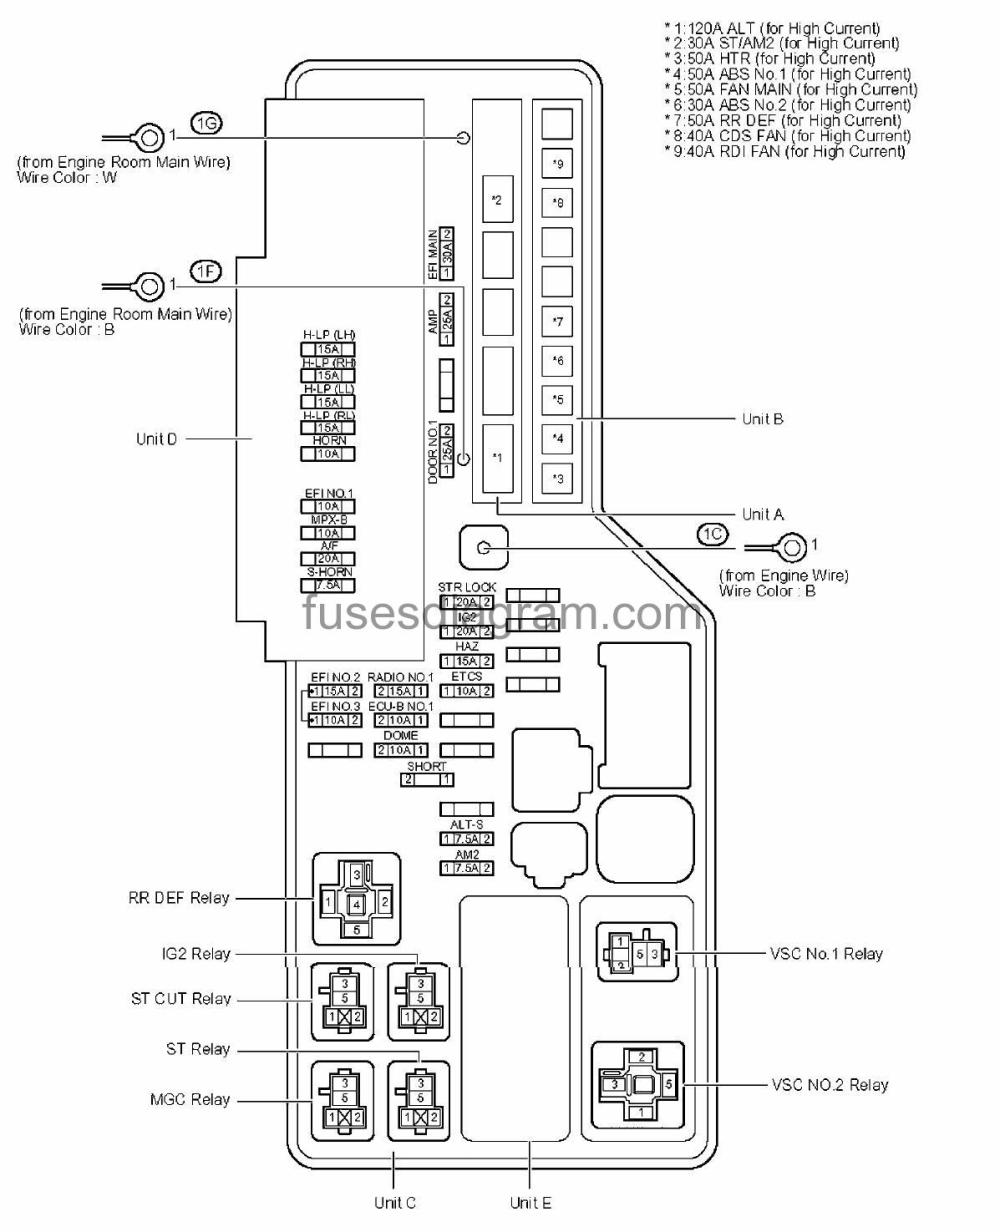 medium resolution of 2002 eclipse fuse box layout wiring library2002 eclipse fuse box layout